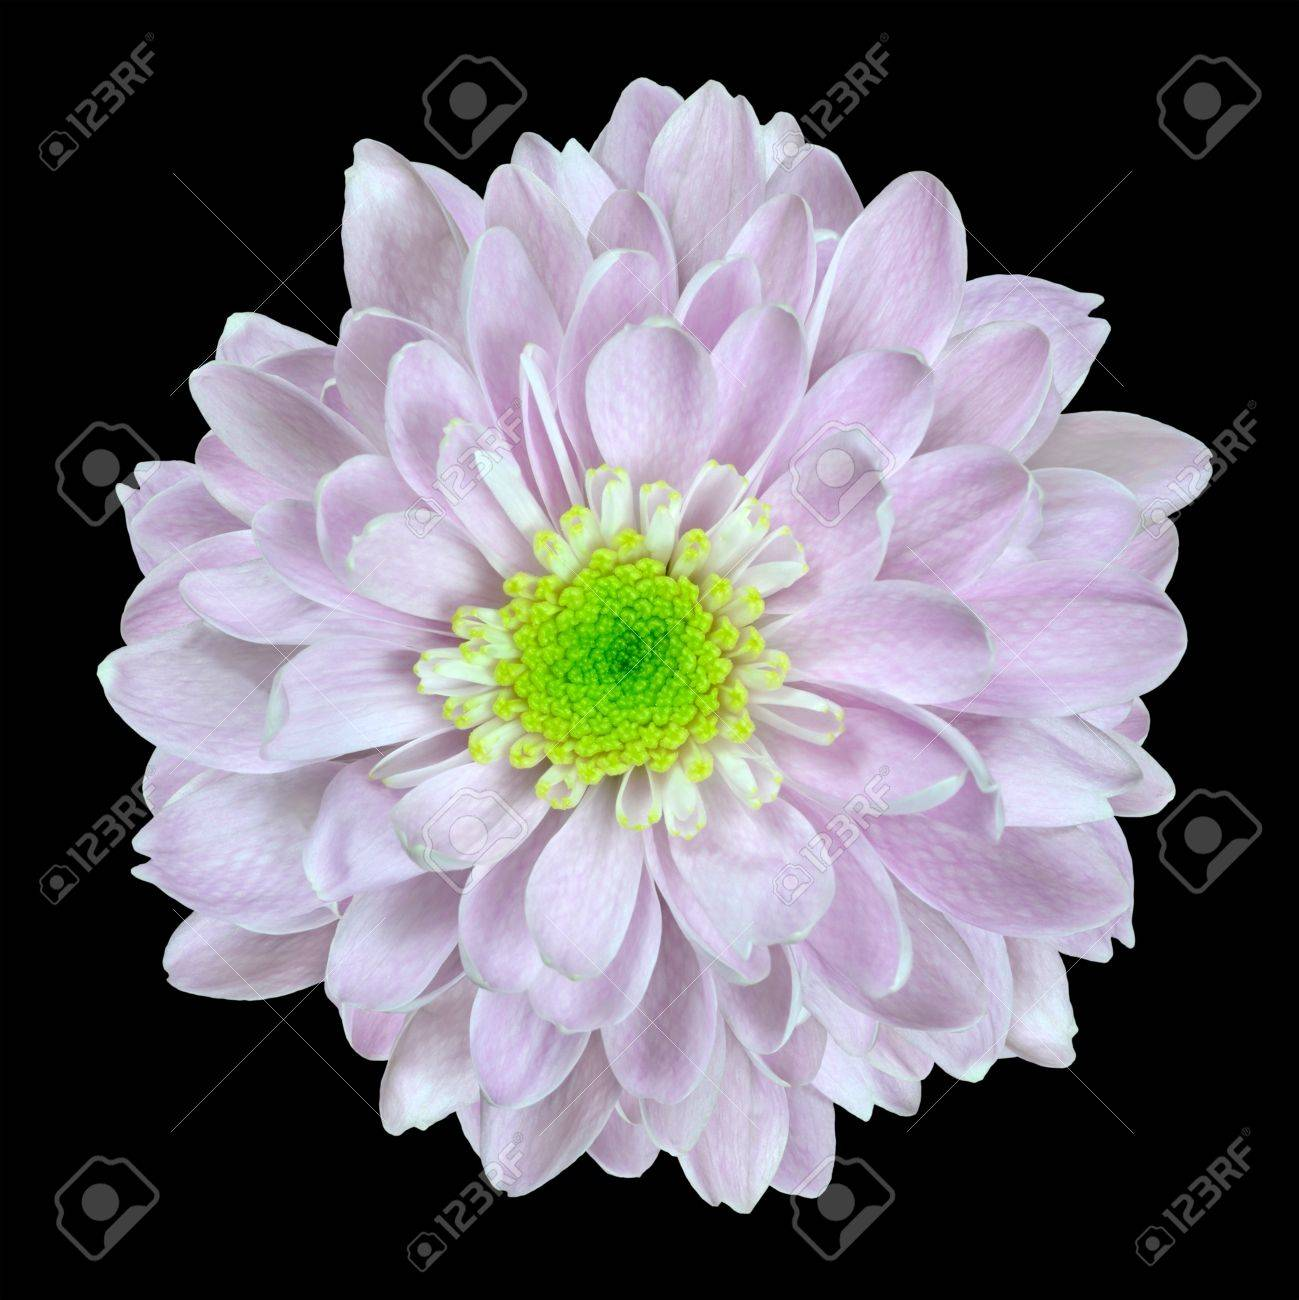 Pink And White Dahlia Flower With Lime Center Isolated On Black